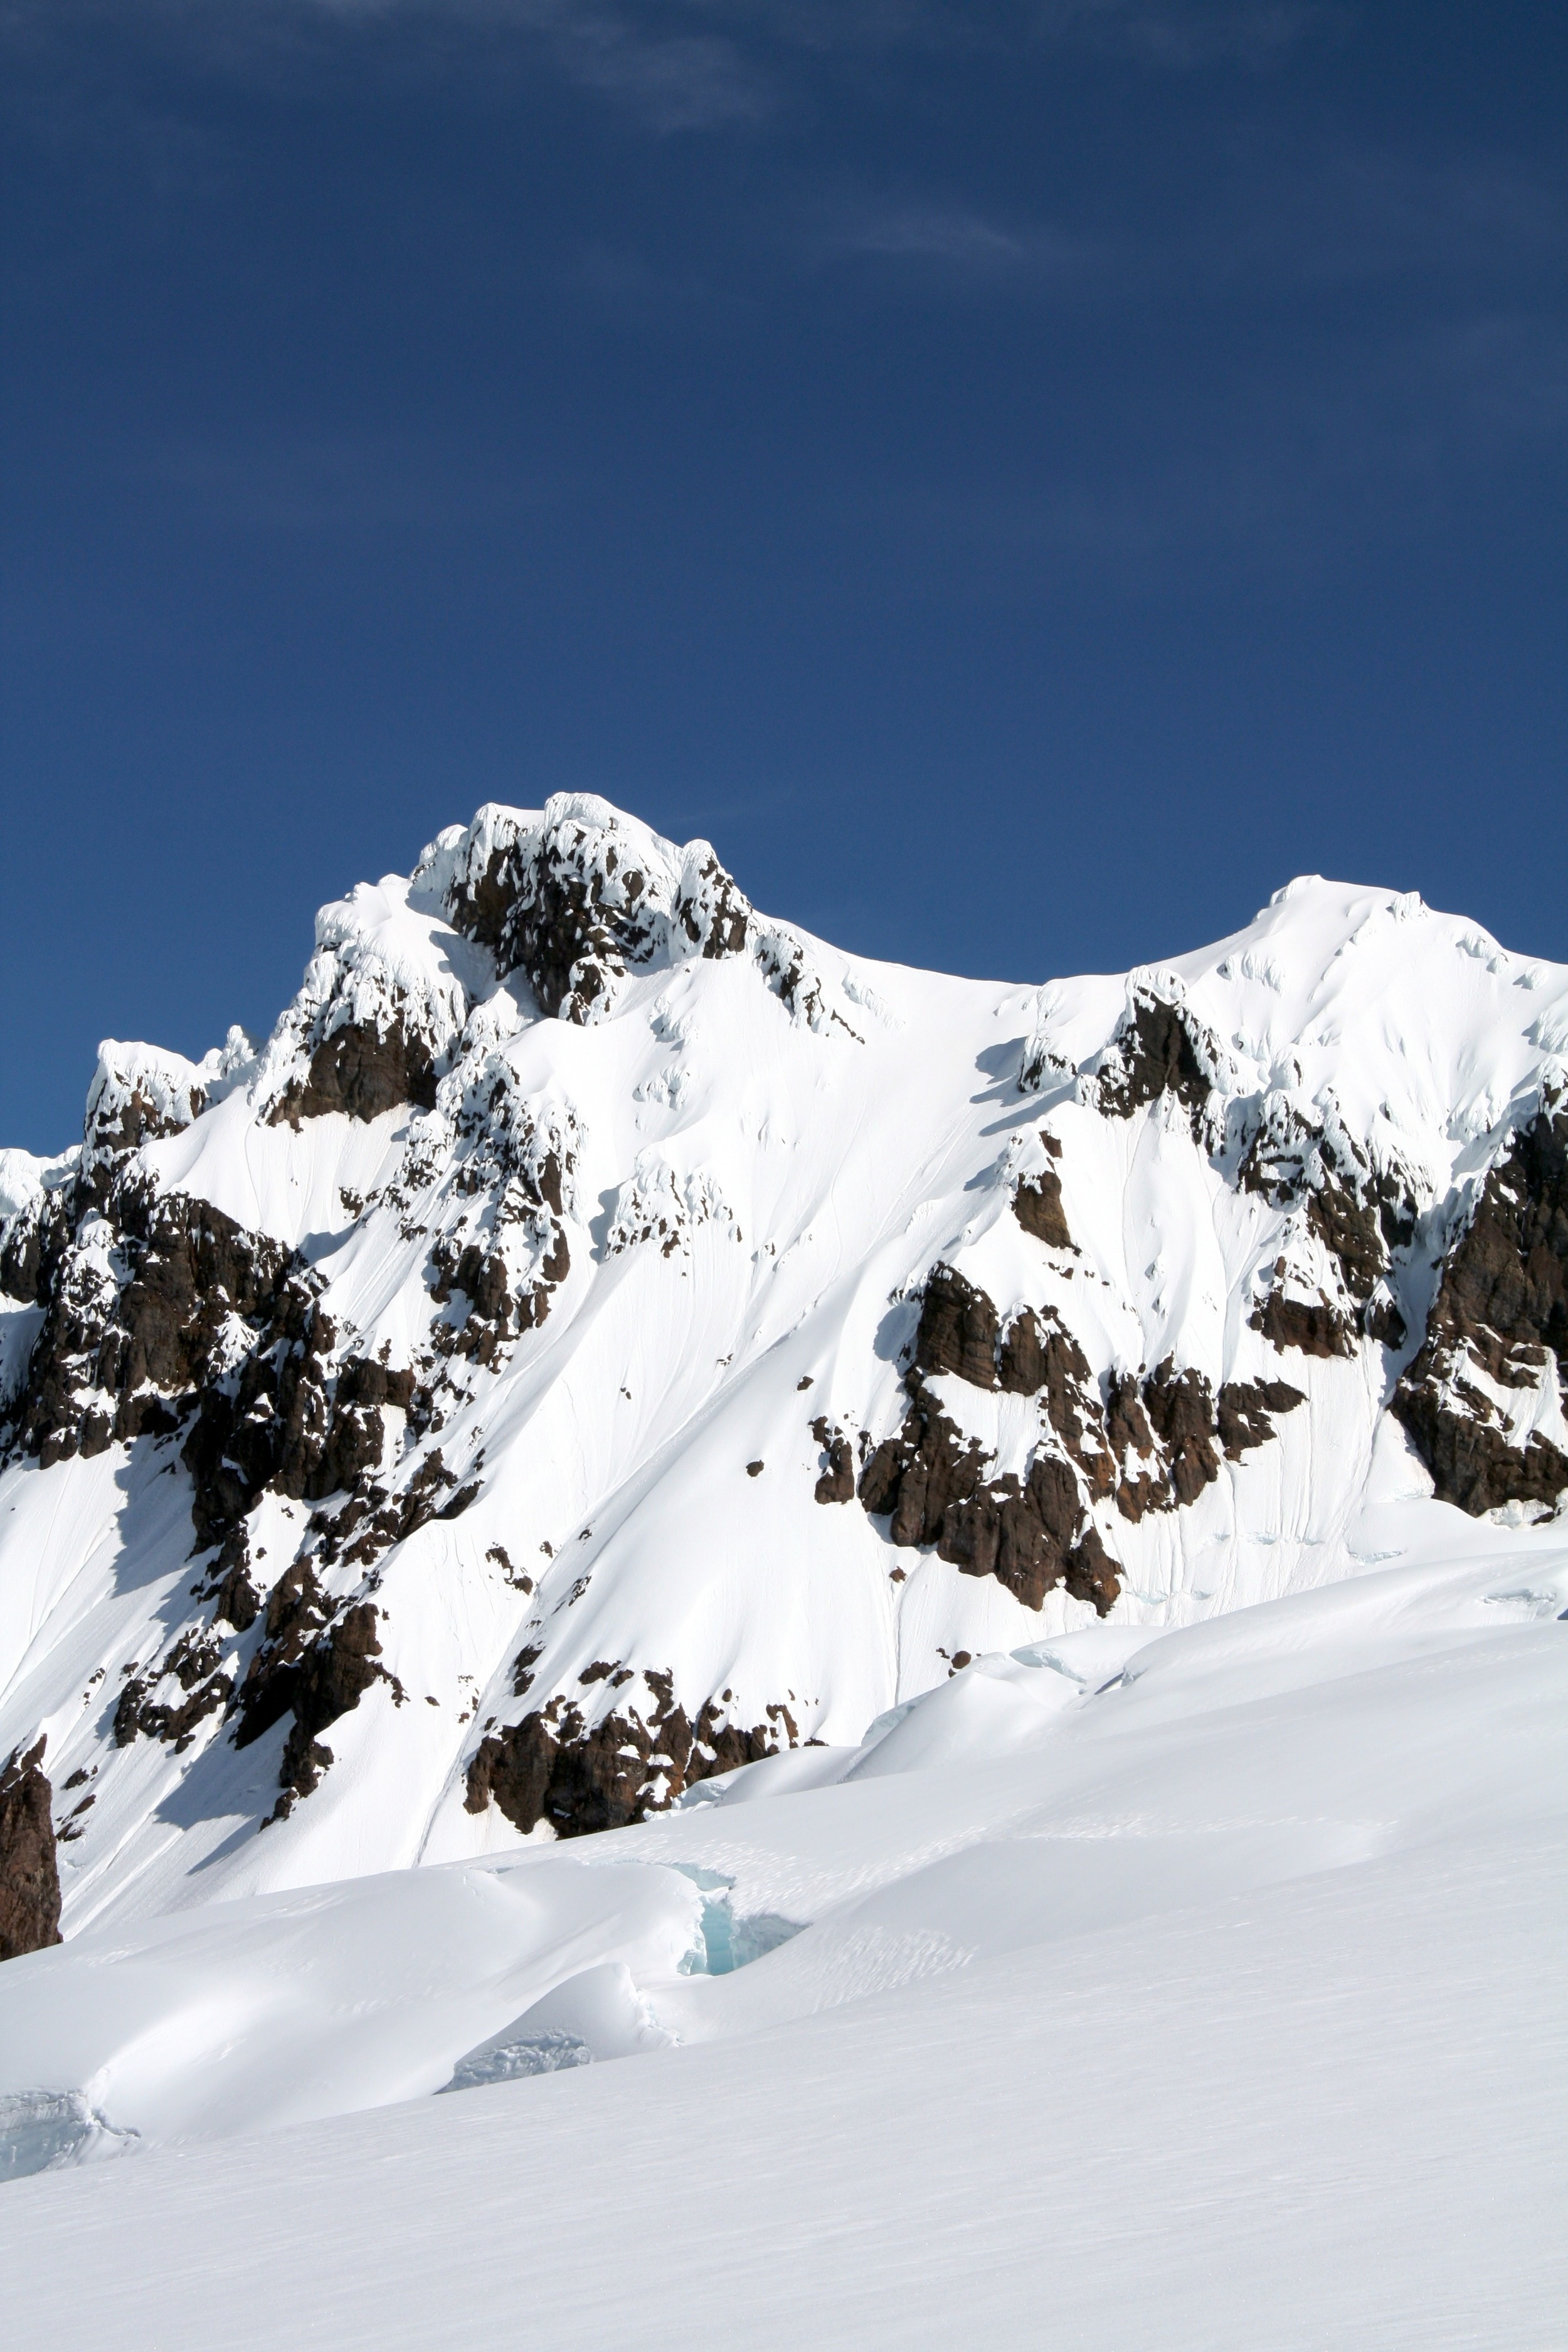 South couloir on Colfax peak